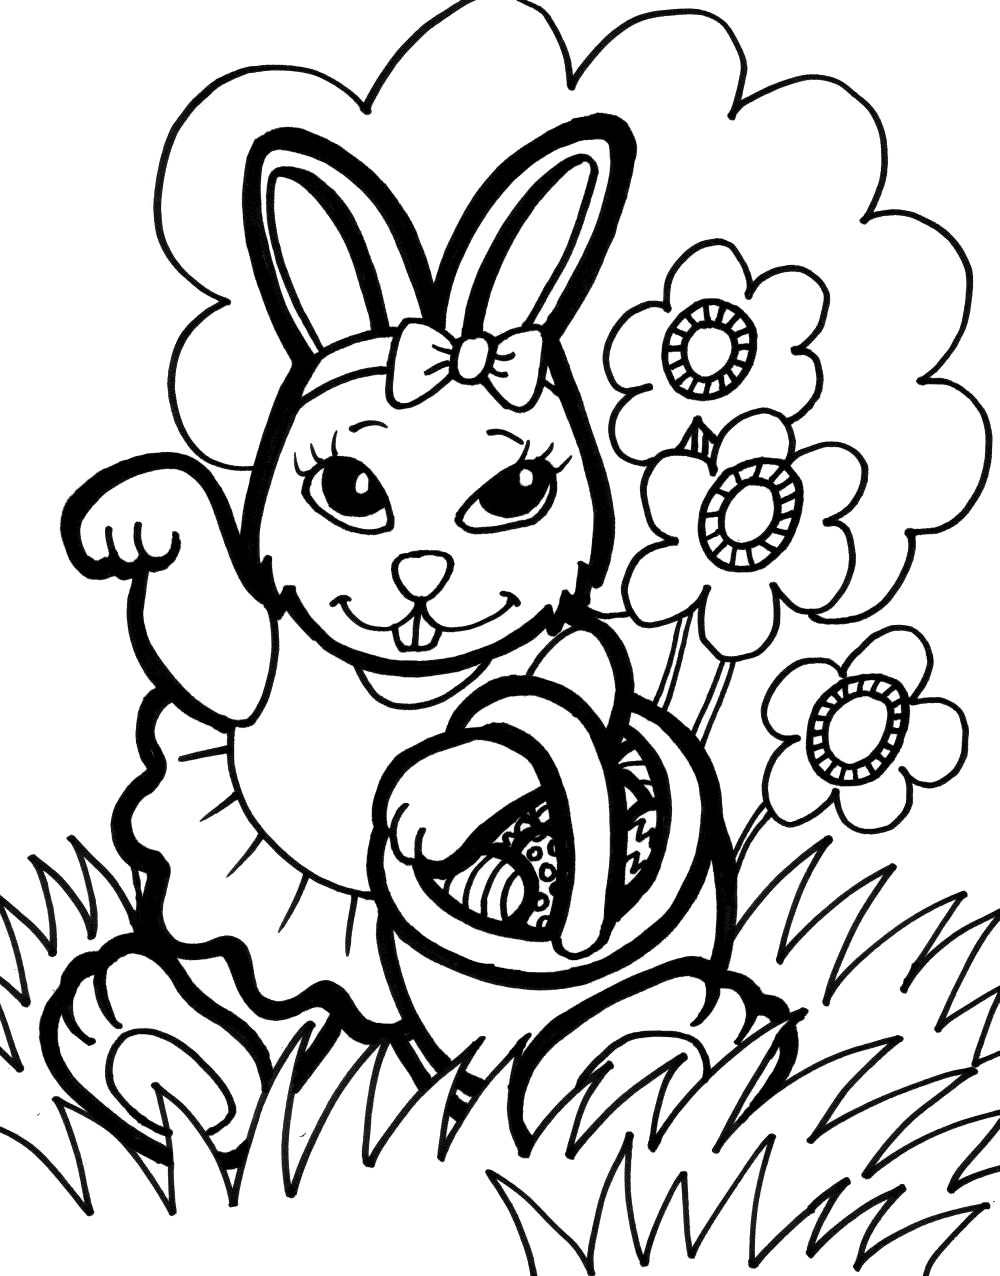 bunny coloring picture rabbit to color for children rabbit kids coloring pages picture coloring bunny